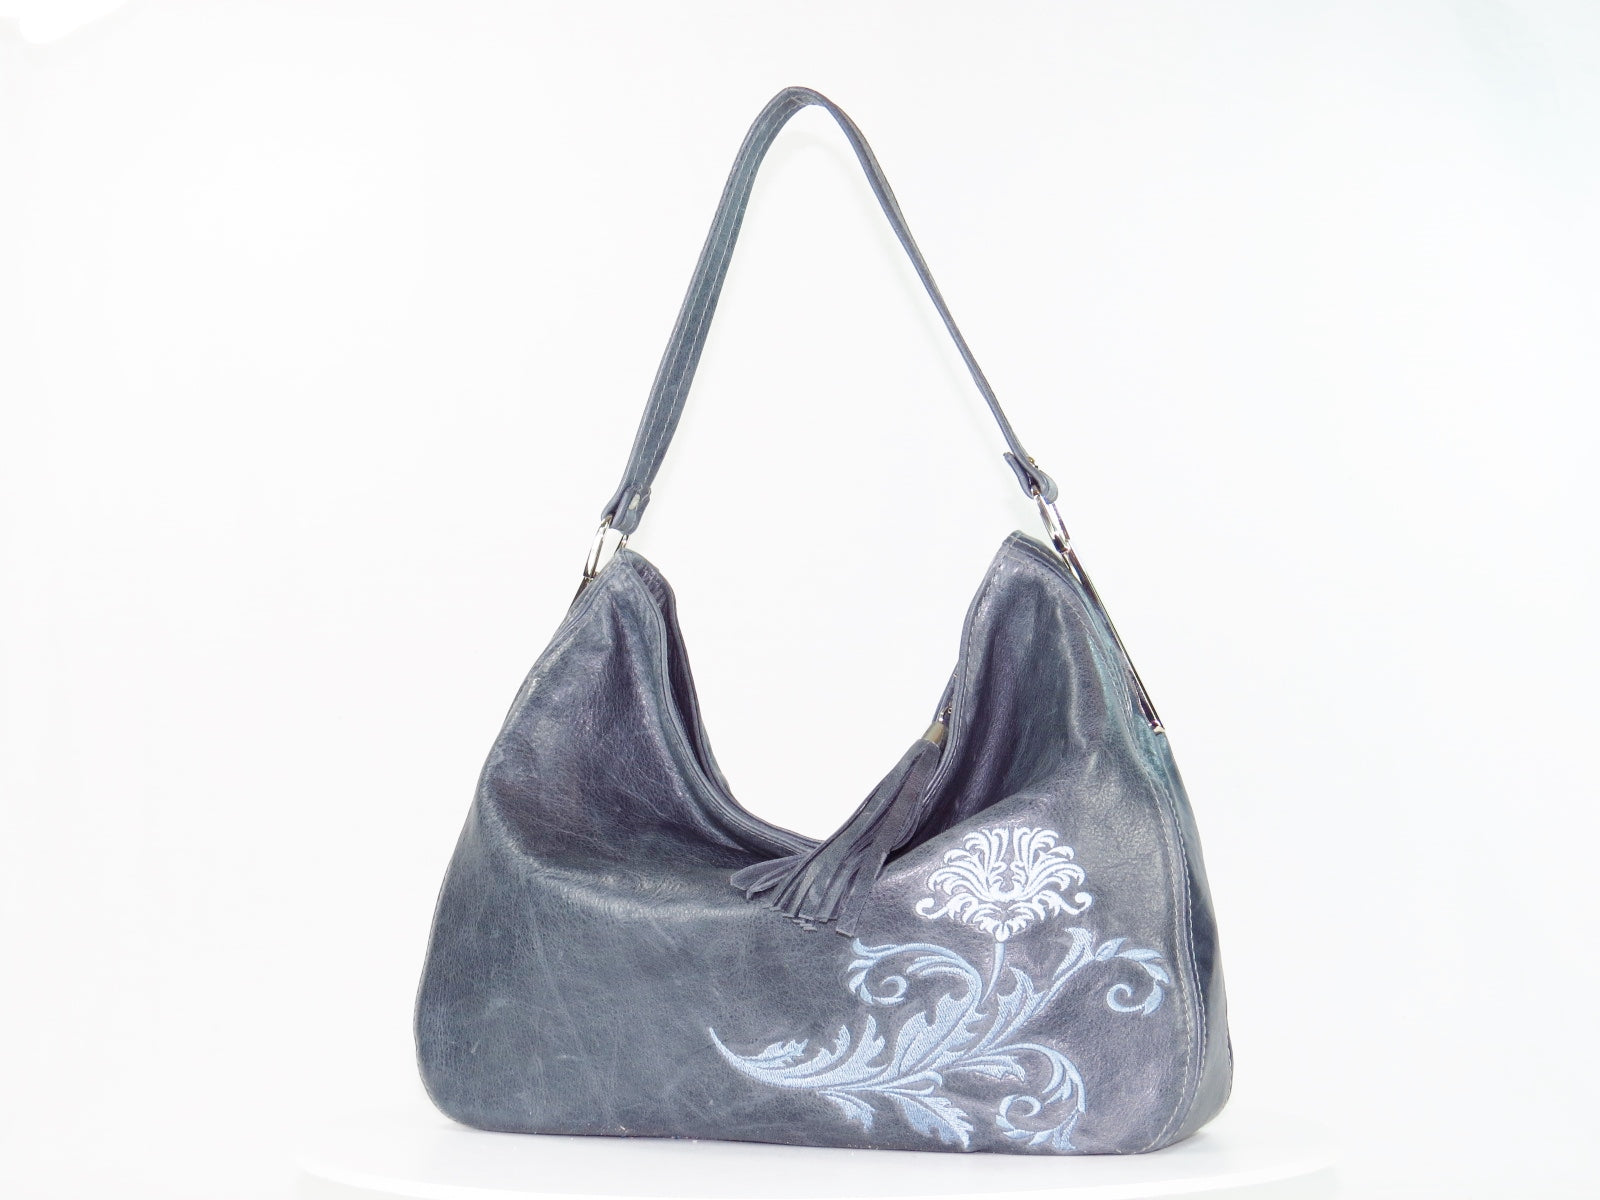 Embroidered Slate Gray Leather Slouchy Hobo Handbag a3272510f6610